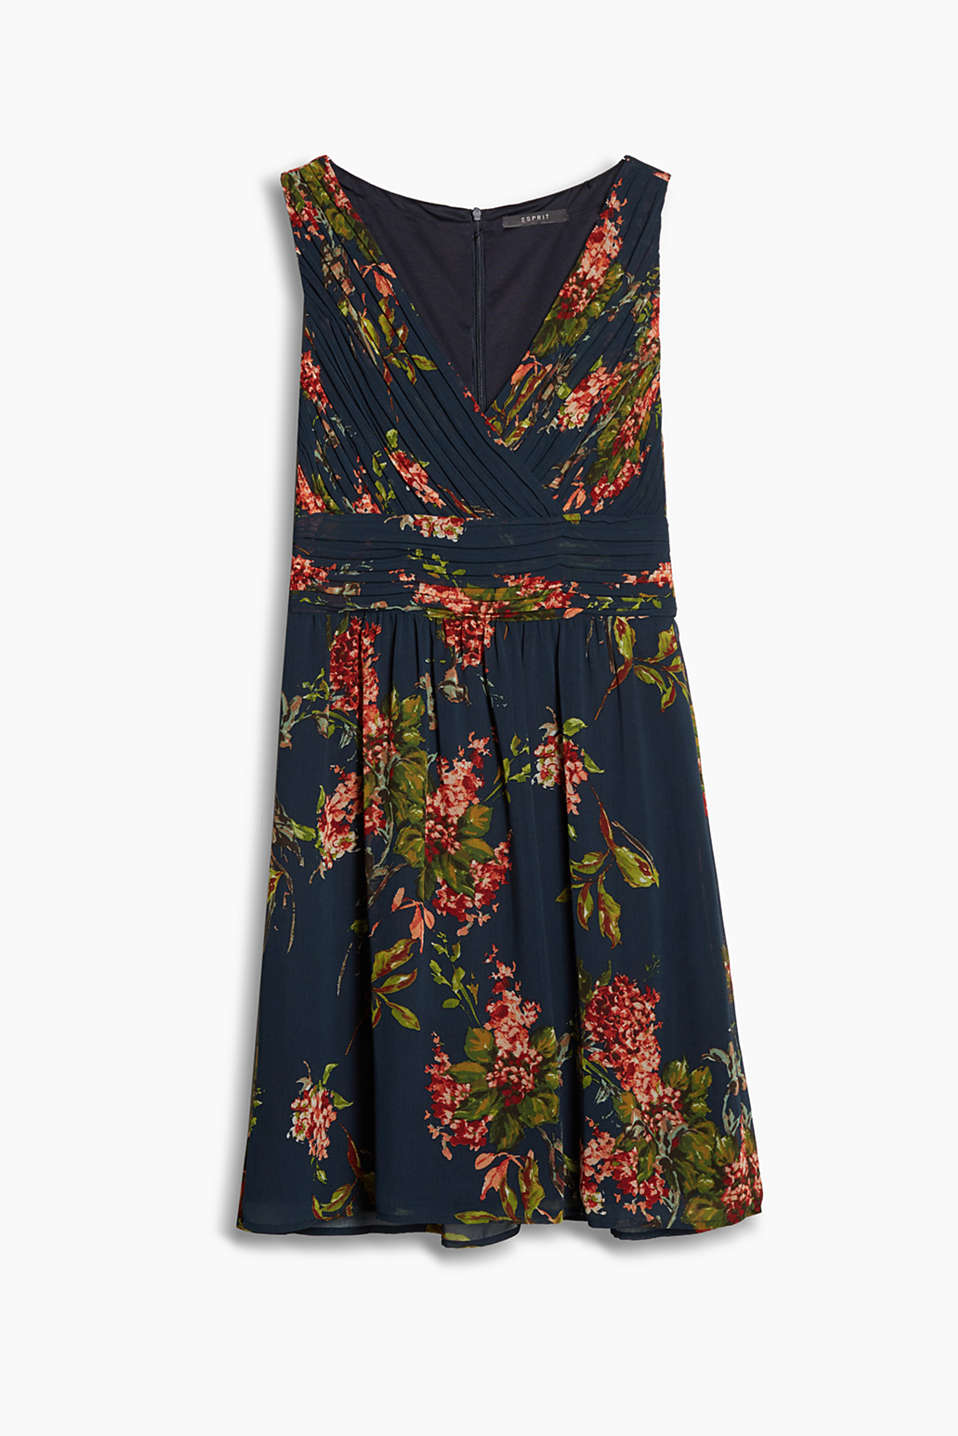 Fitted chiffon dress with a floral print and pleat details